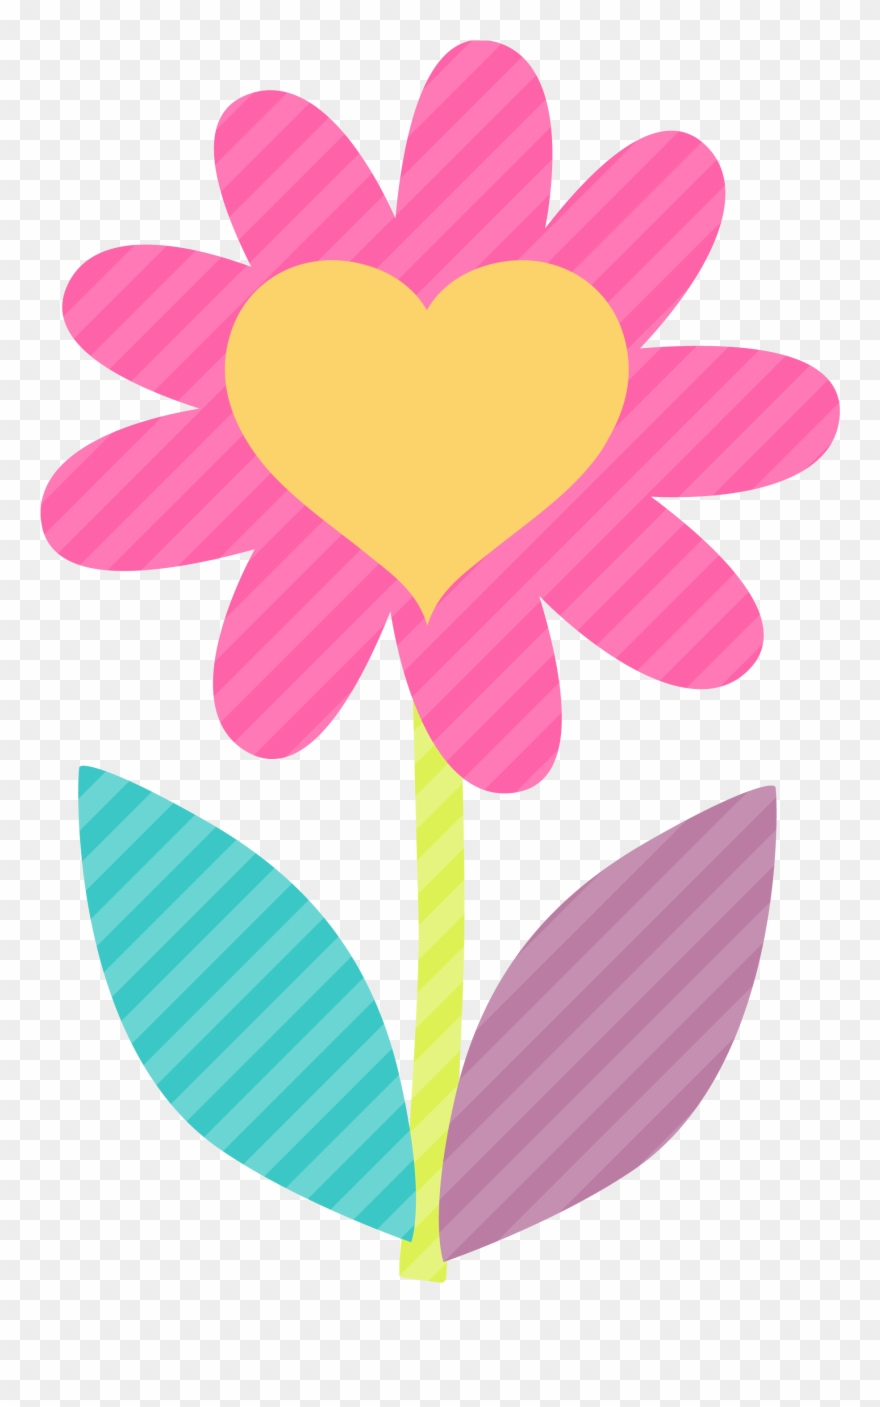 Cute clipart flowers picture free download Clipart Flower Spa - Cute Flower Clipart Png Transparent Png (#21895 ... picture free download